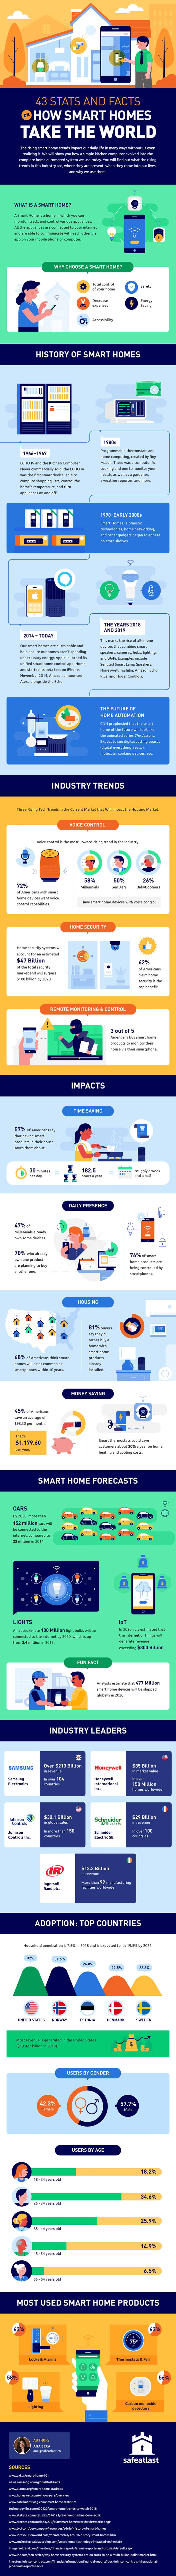 Stats and facts on smart homes